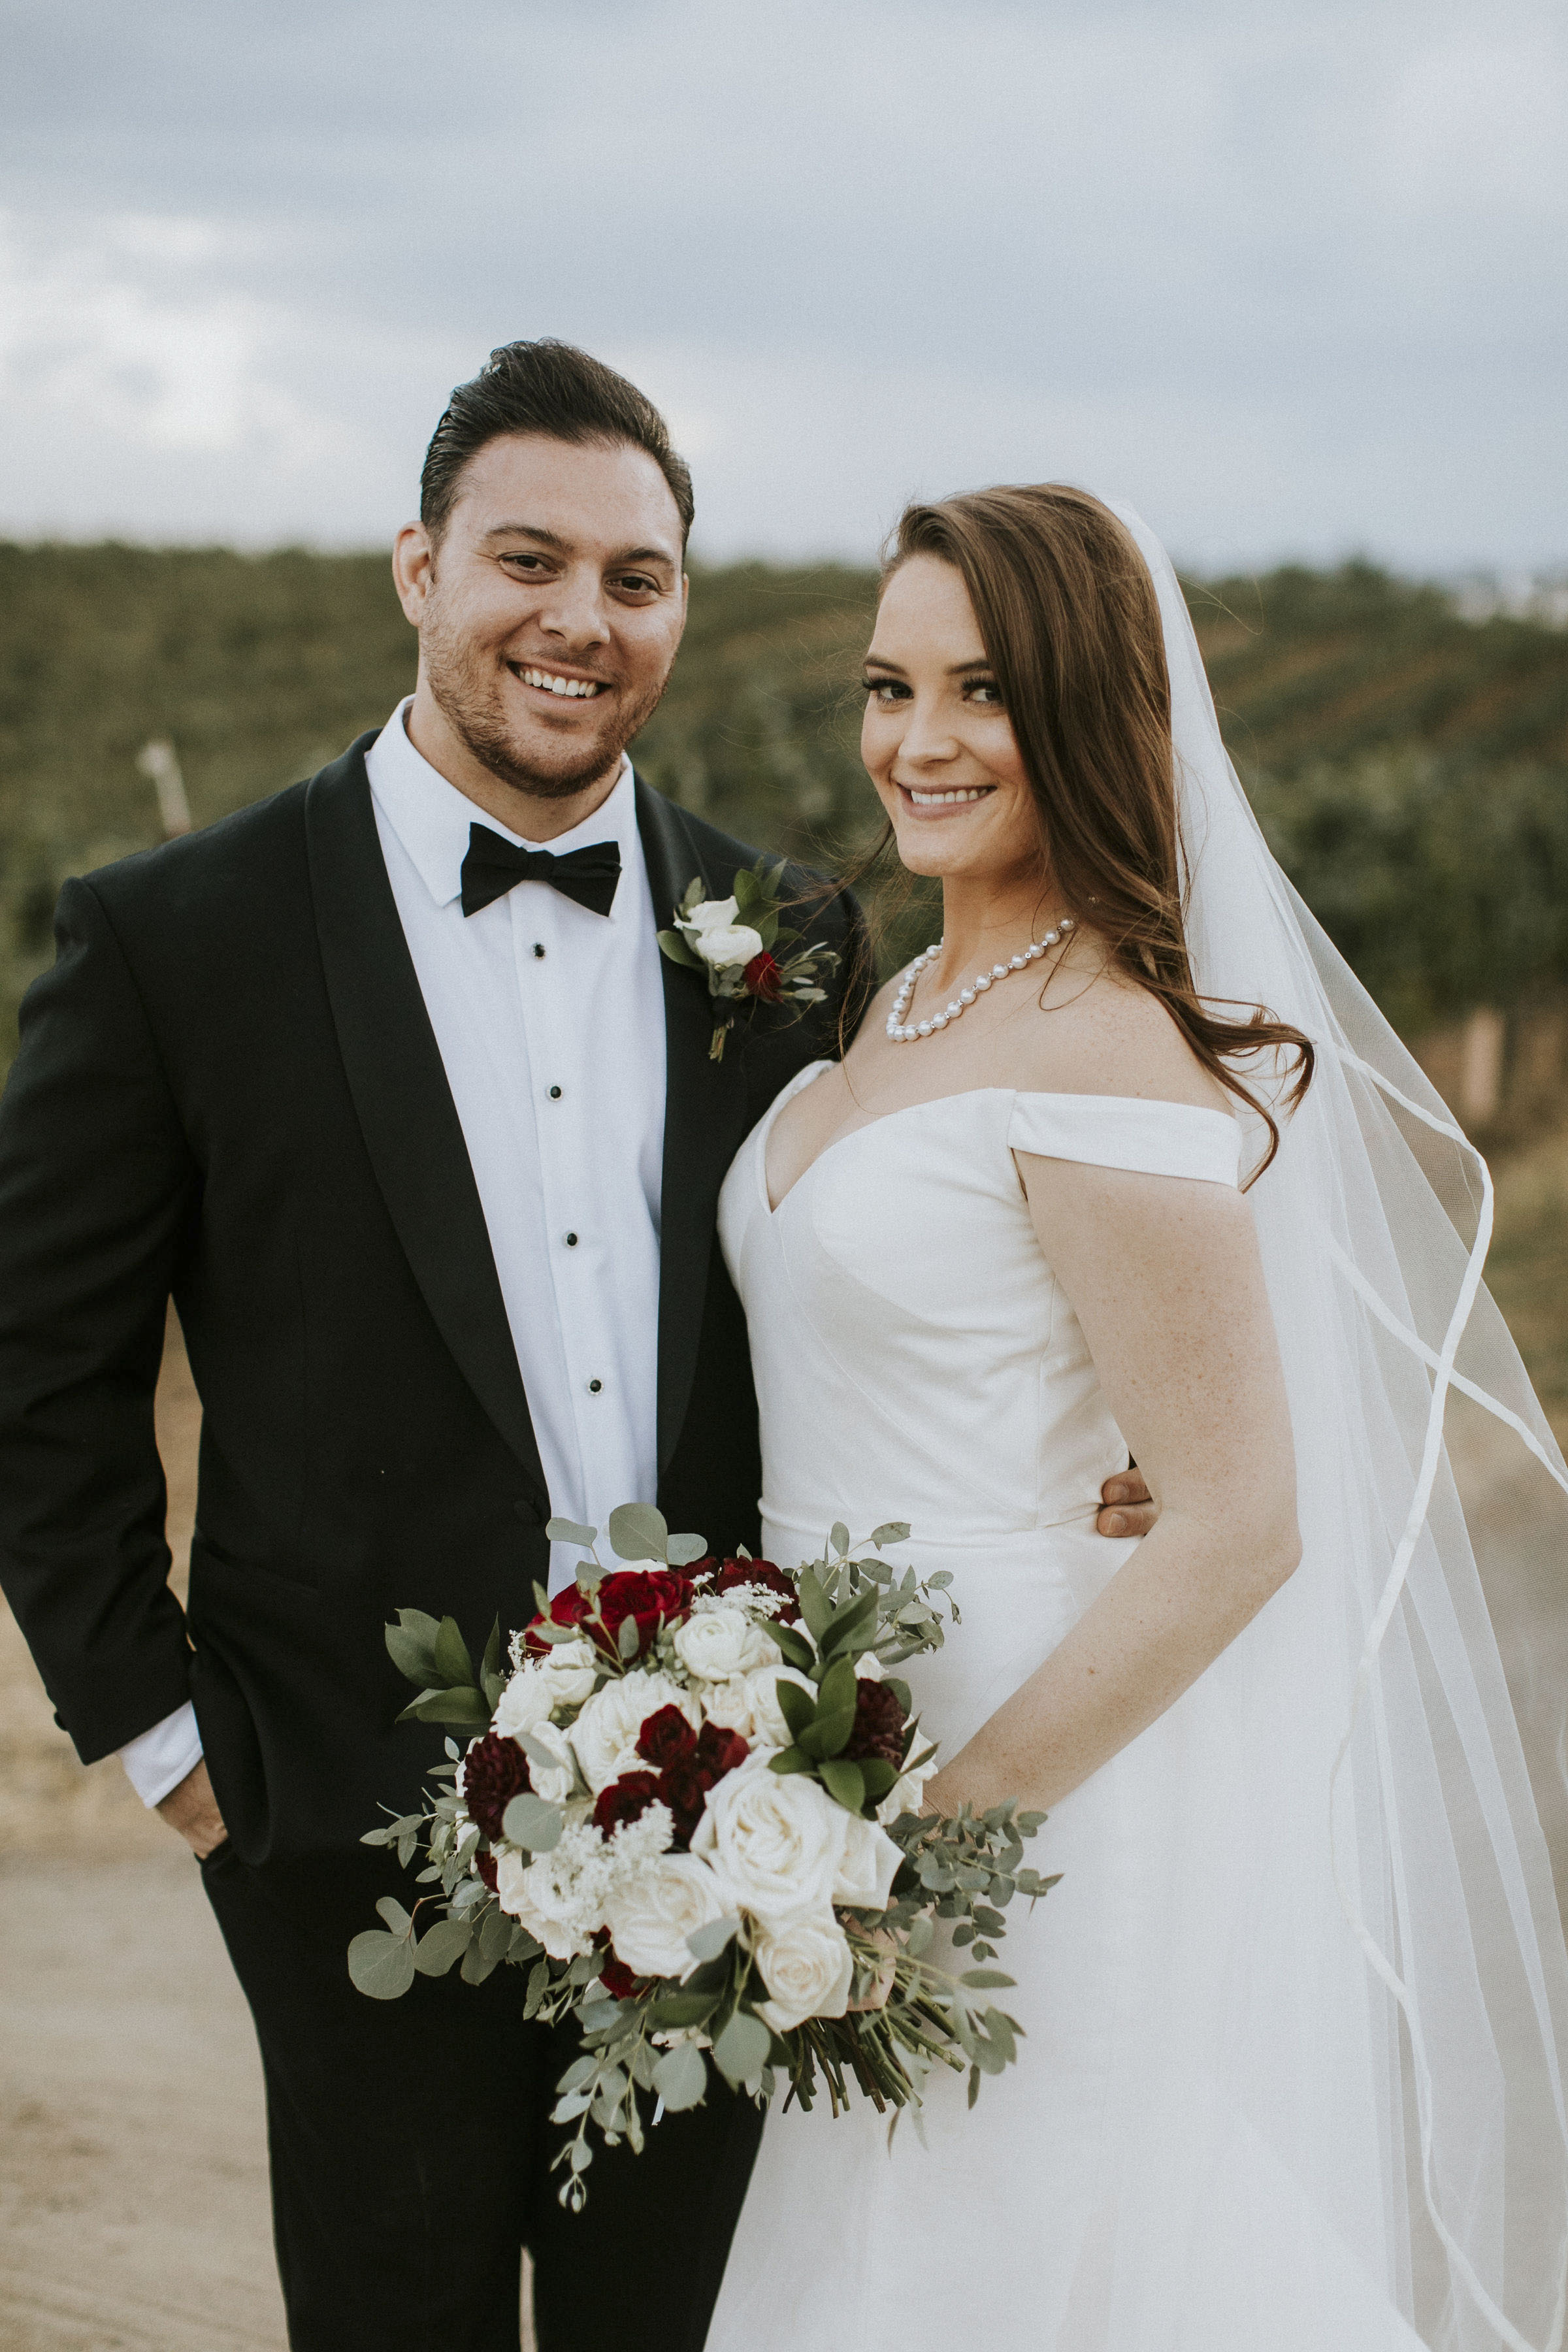 Domenica Beauty _ Hair and Makeup Artist _Wedding _ Temecula, CA _ Catherine and Darryl _ 36.JPG